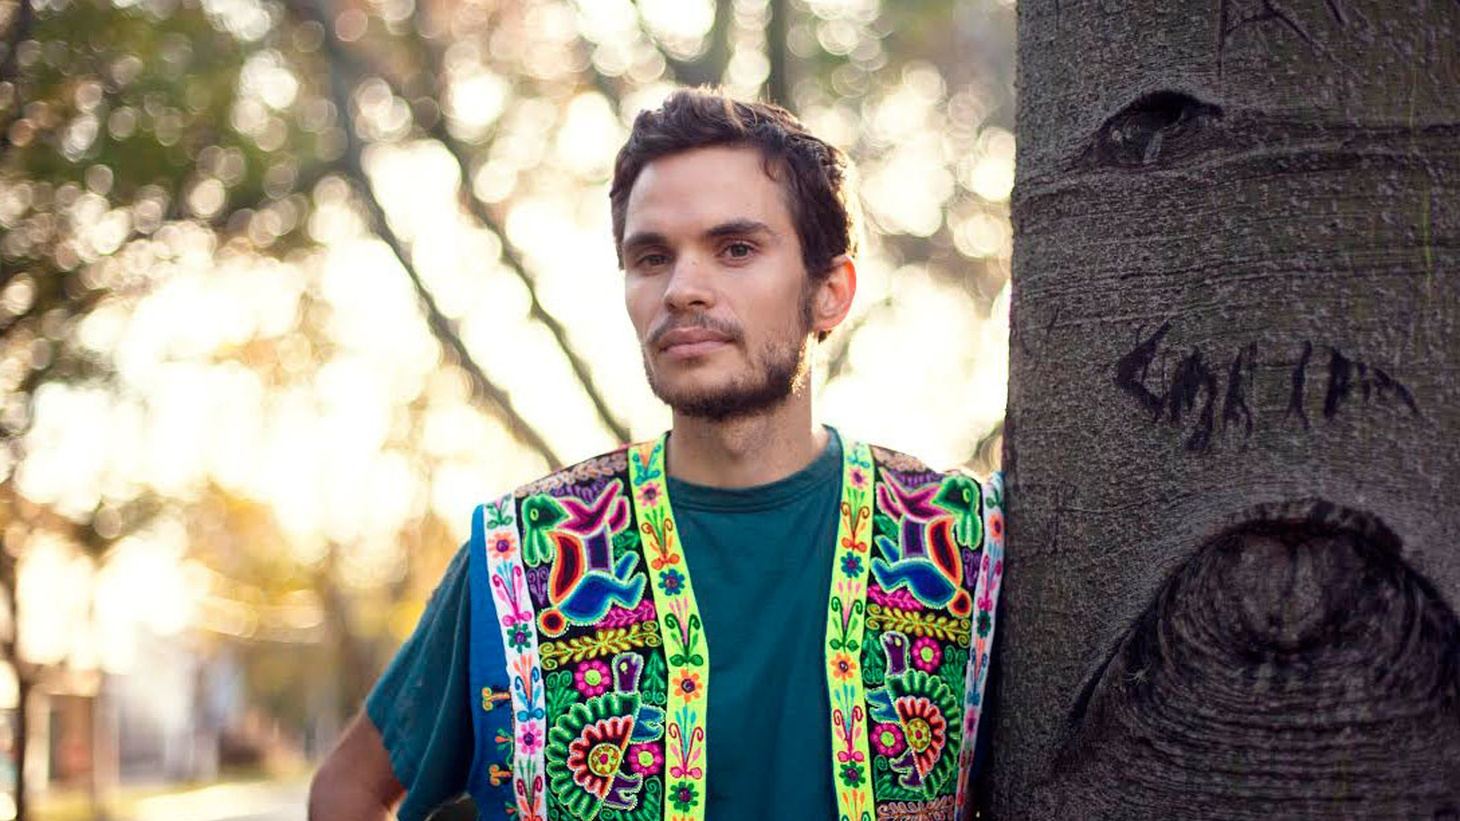 Argentine producer and artist Chancha Via Circuito comes out of the digital Cumbia scene incorporating rhythms from neighboring countries like Paraguay and Brazil.